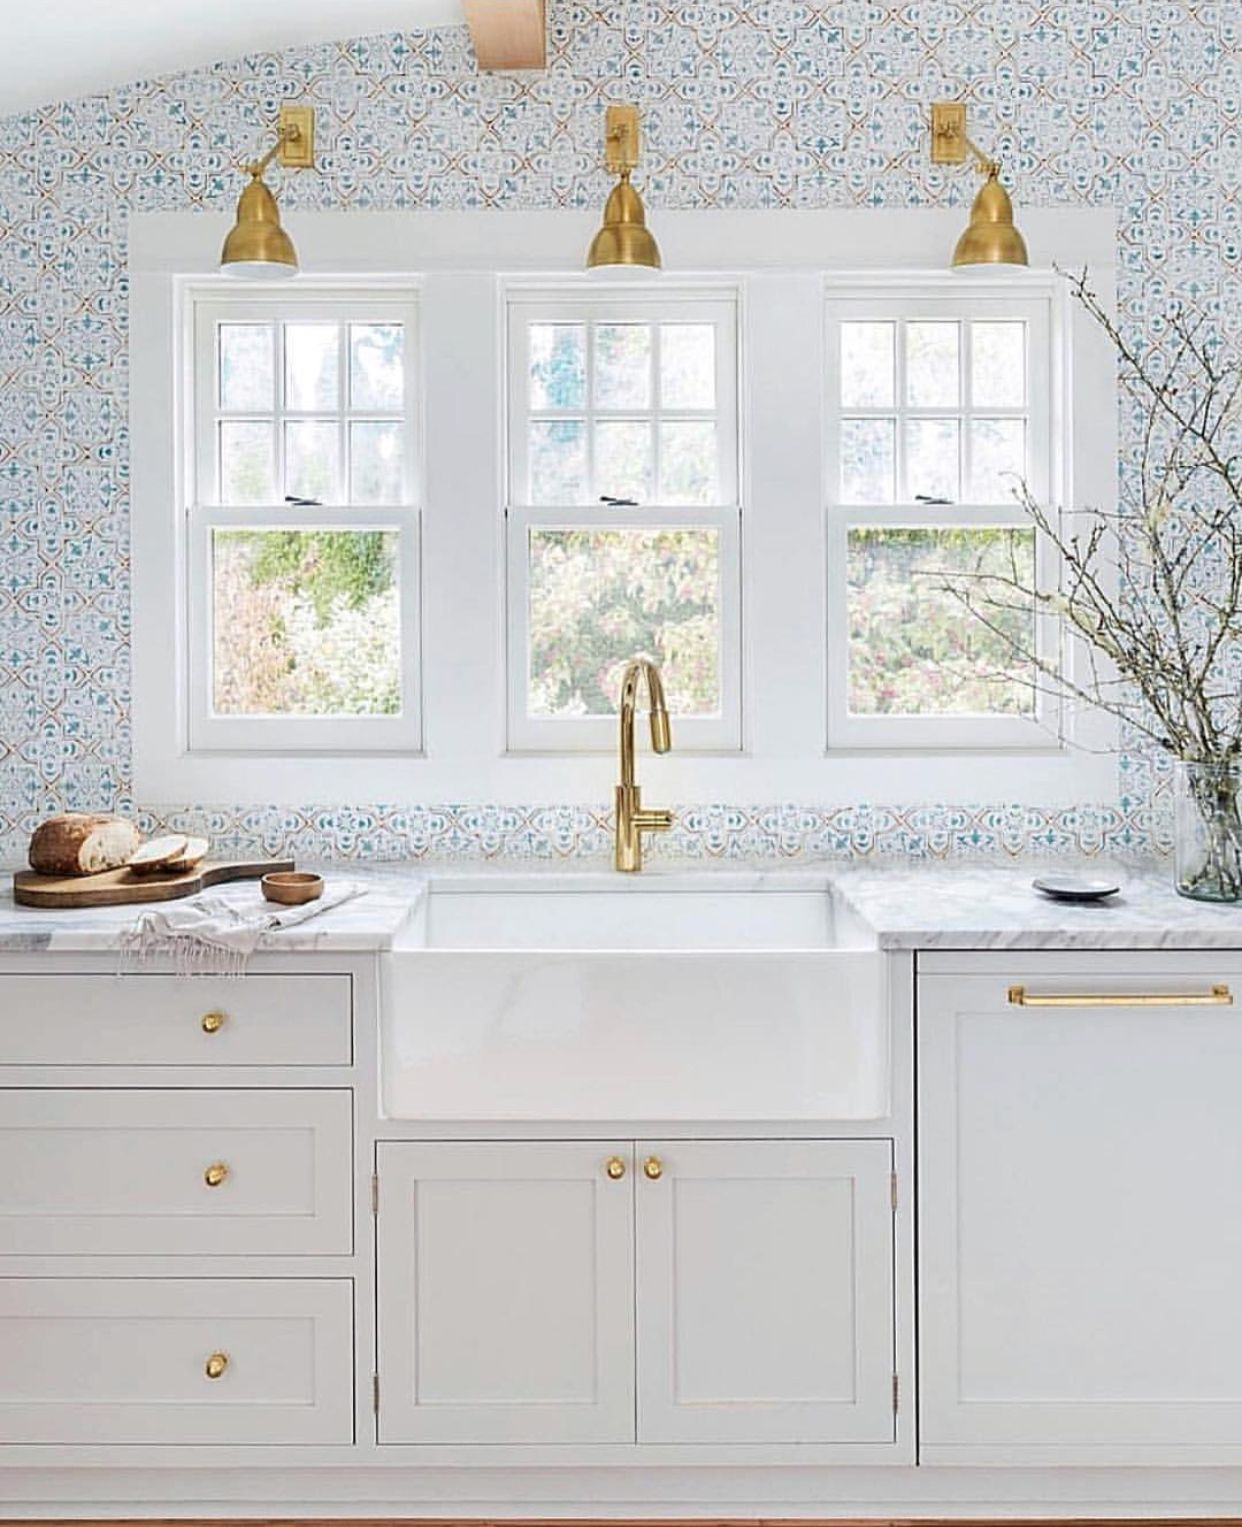 White Kitchen With Gold Hardware And Pattern Backsplash Kitchens